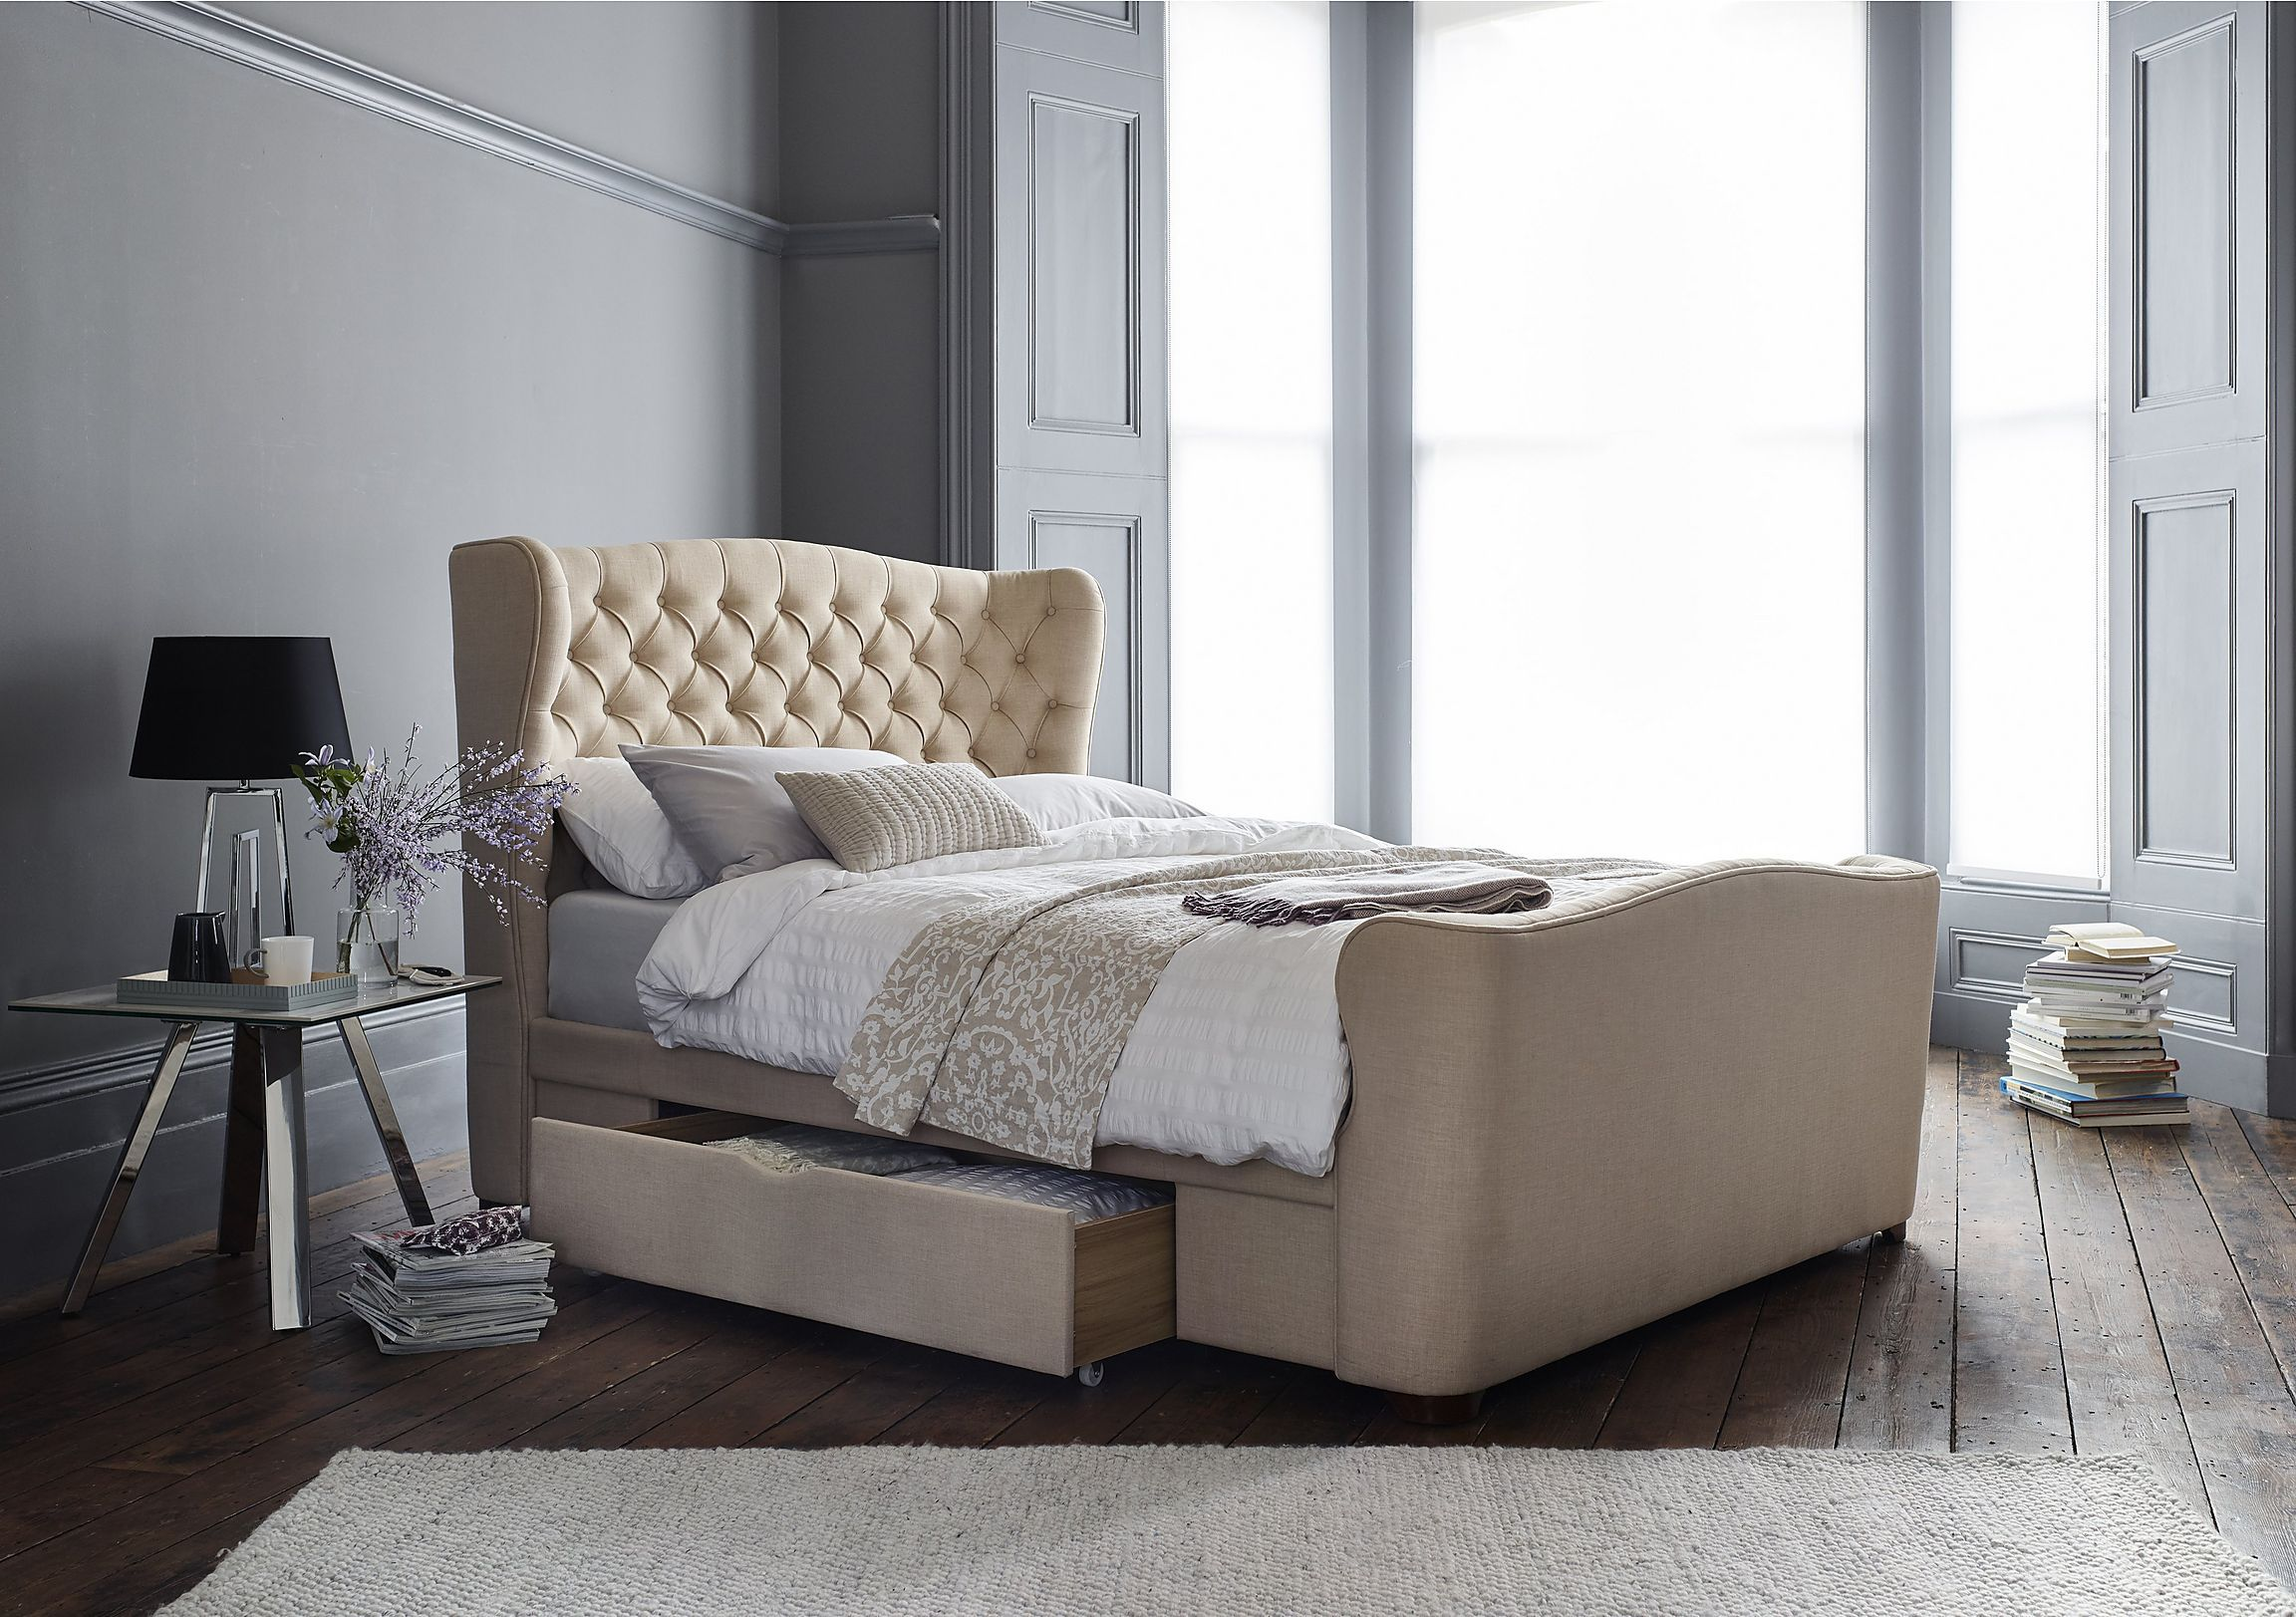 Great value fabric upholstered bed frame with on trend